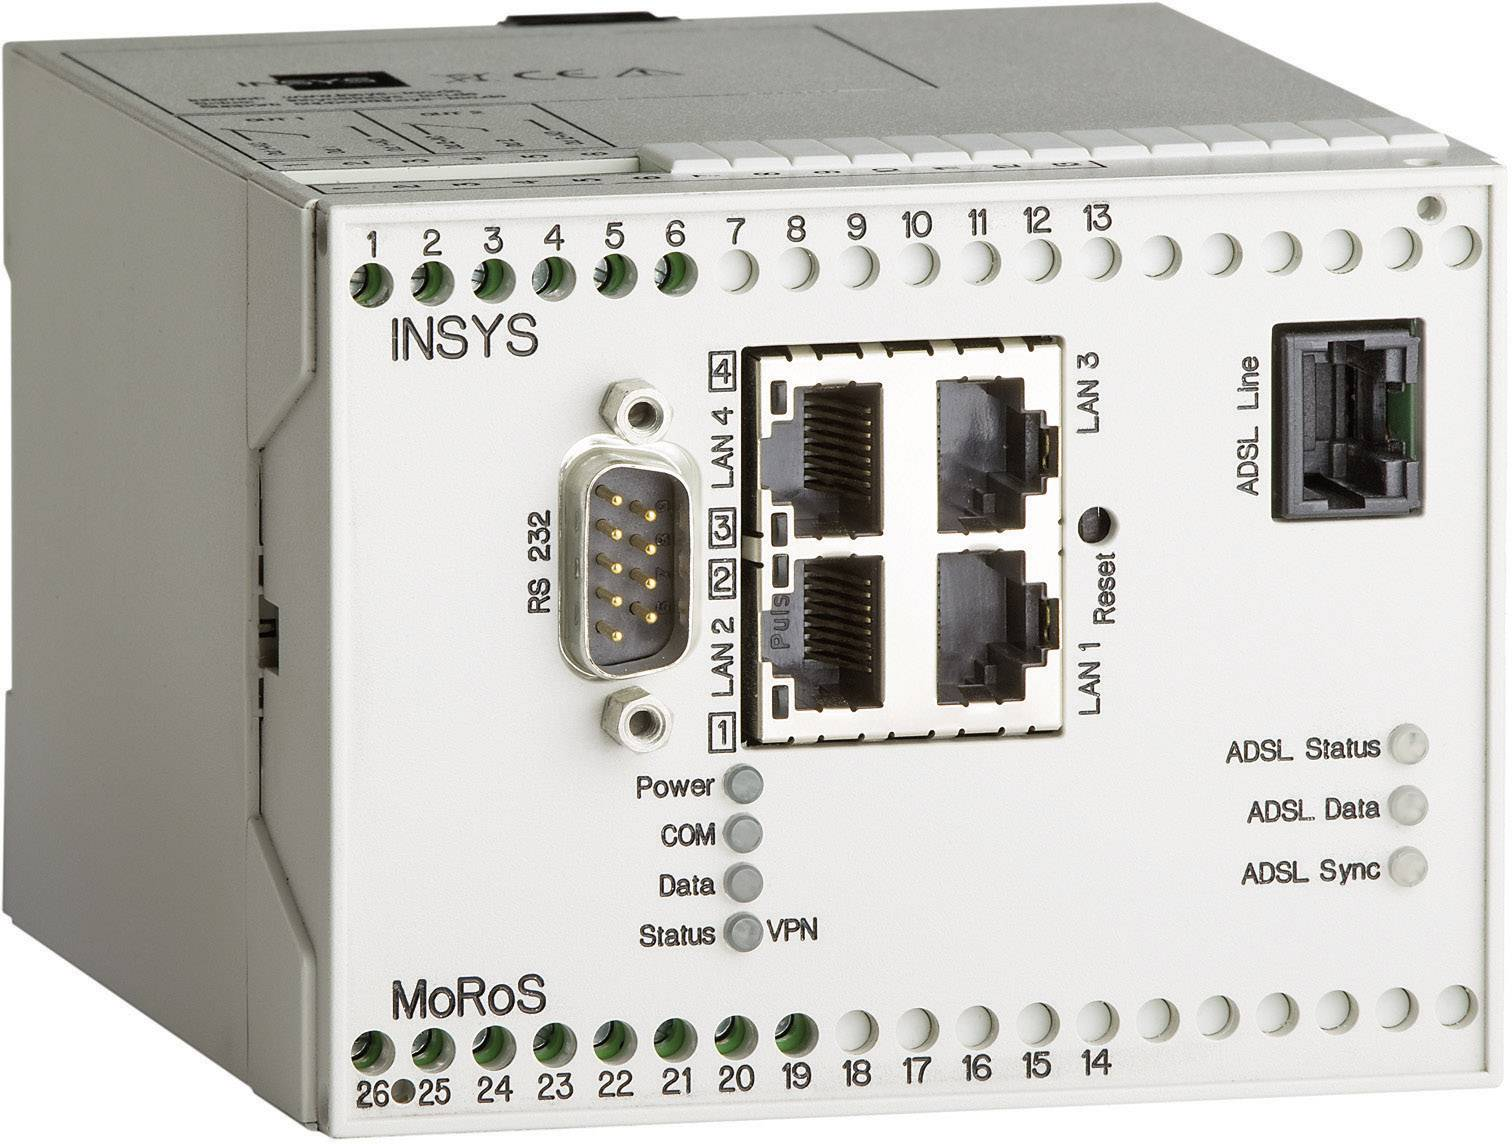 Router Insys MoRoS ADSL PRO 10000216, 110 x 100 x 75 mm